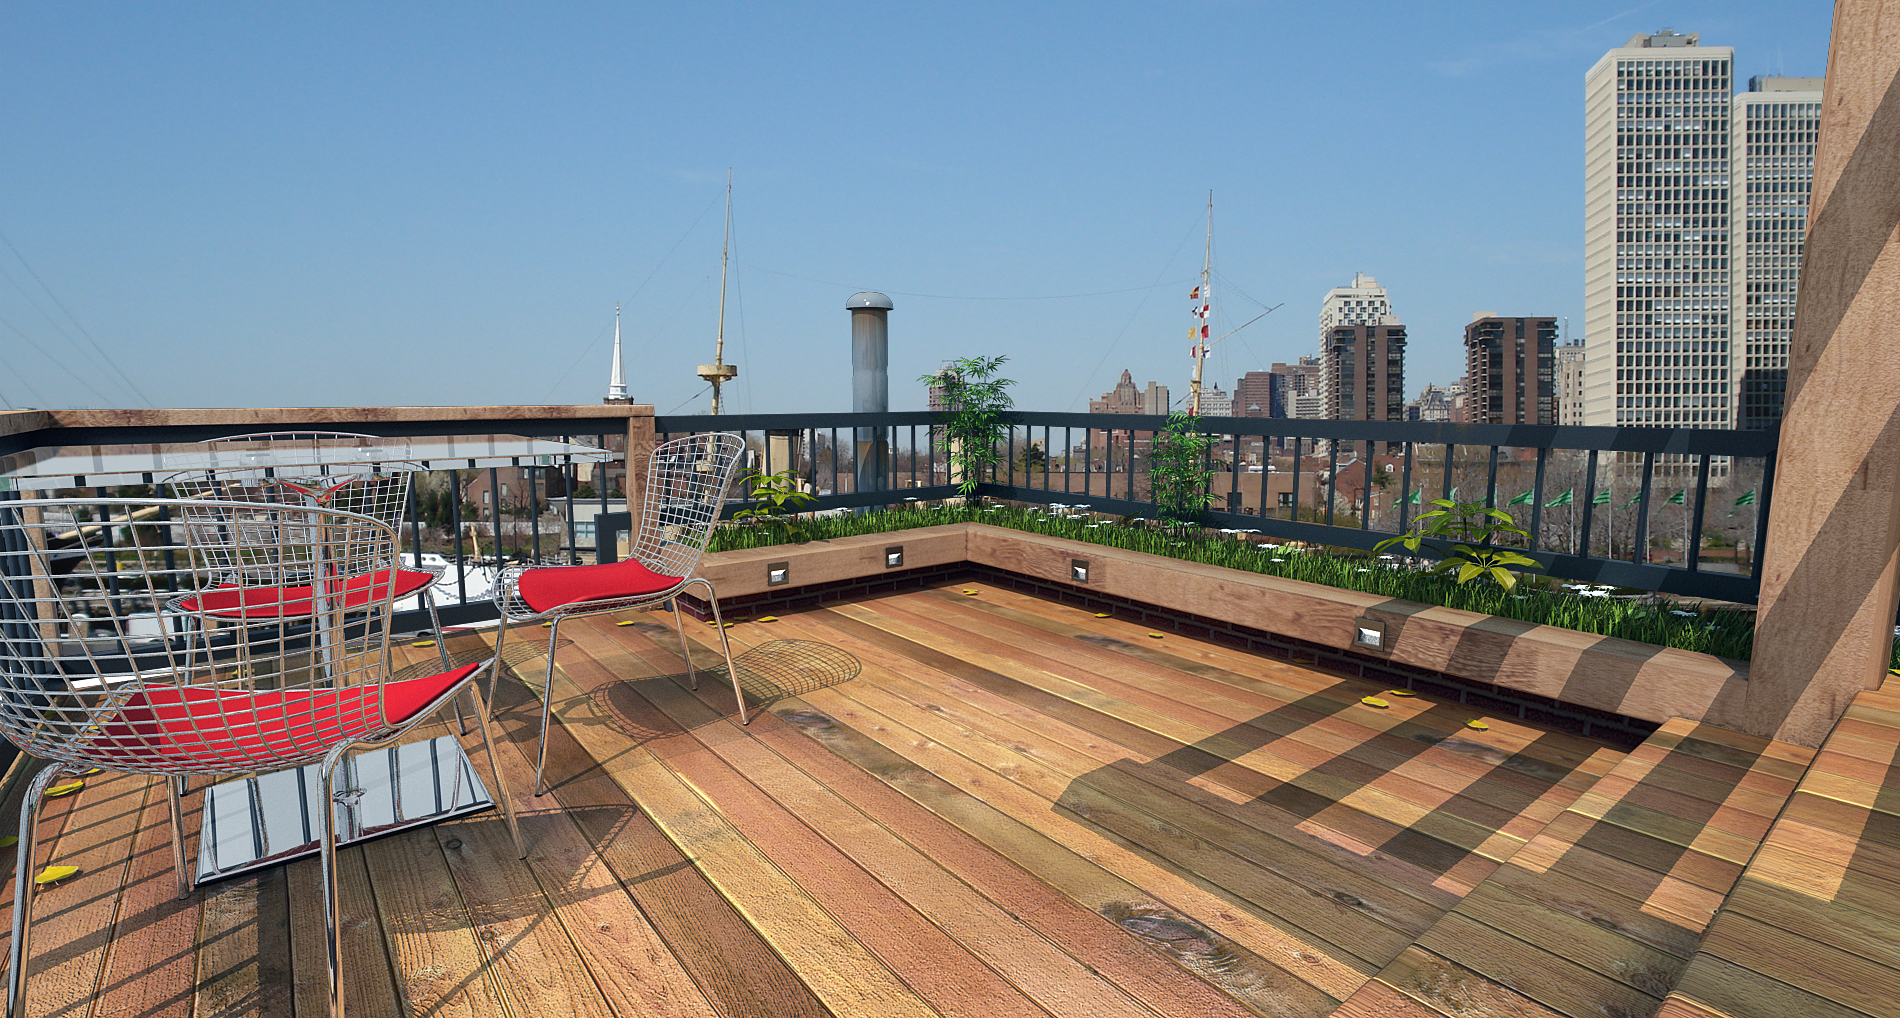 Deck designs rooftop deck design ideas for Rooftop deck design ideas